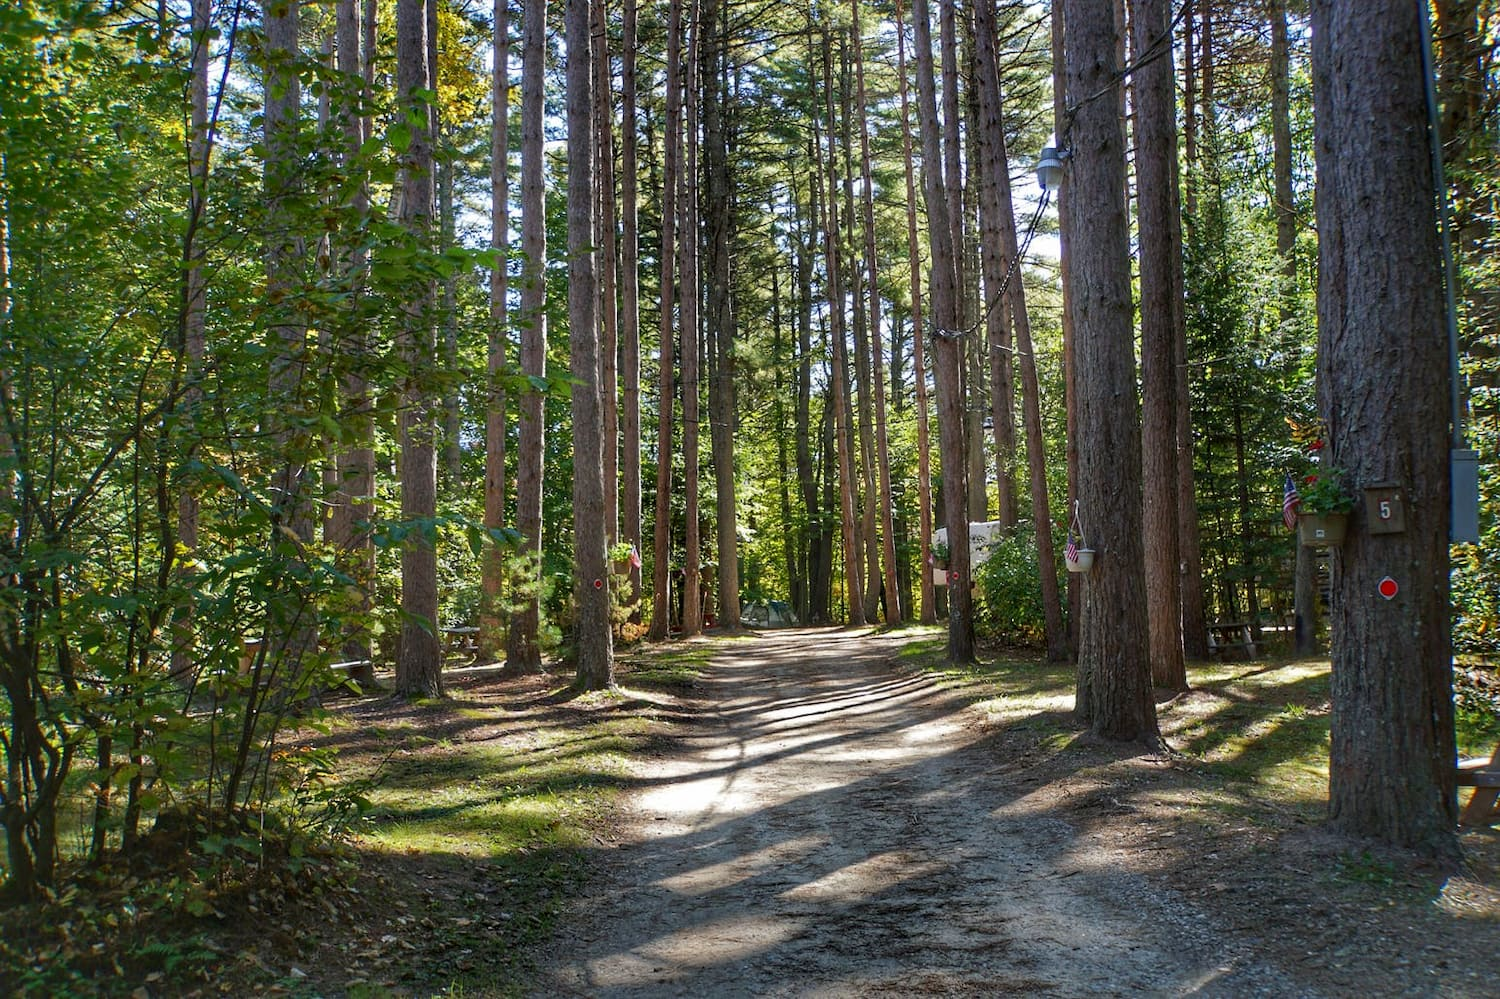 road to campsites through tons of pine trees